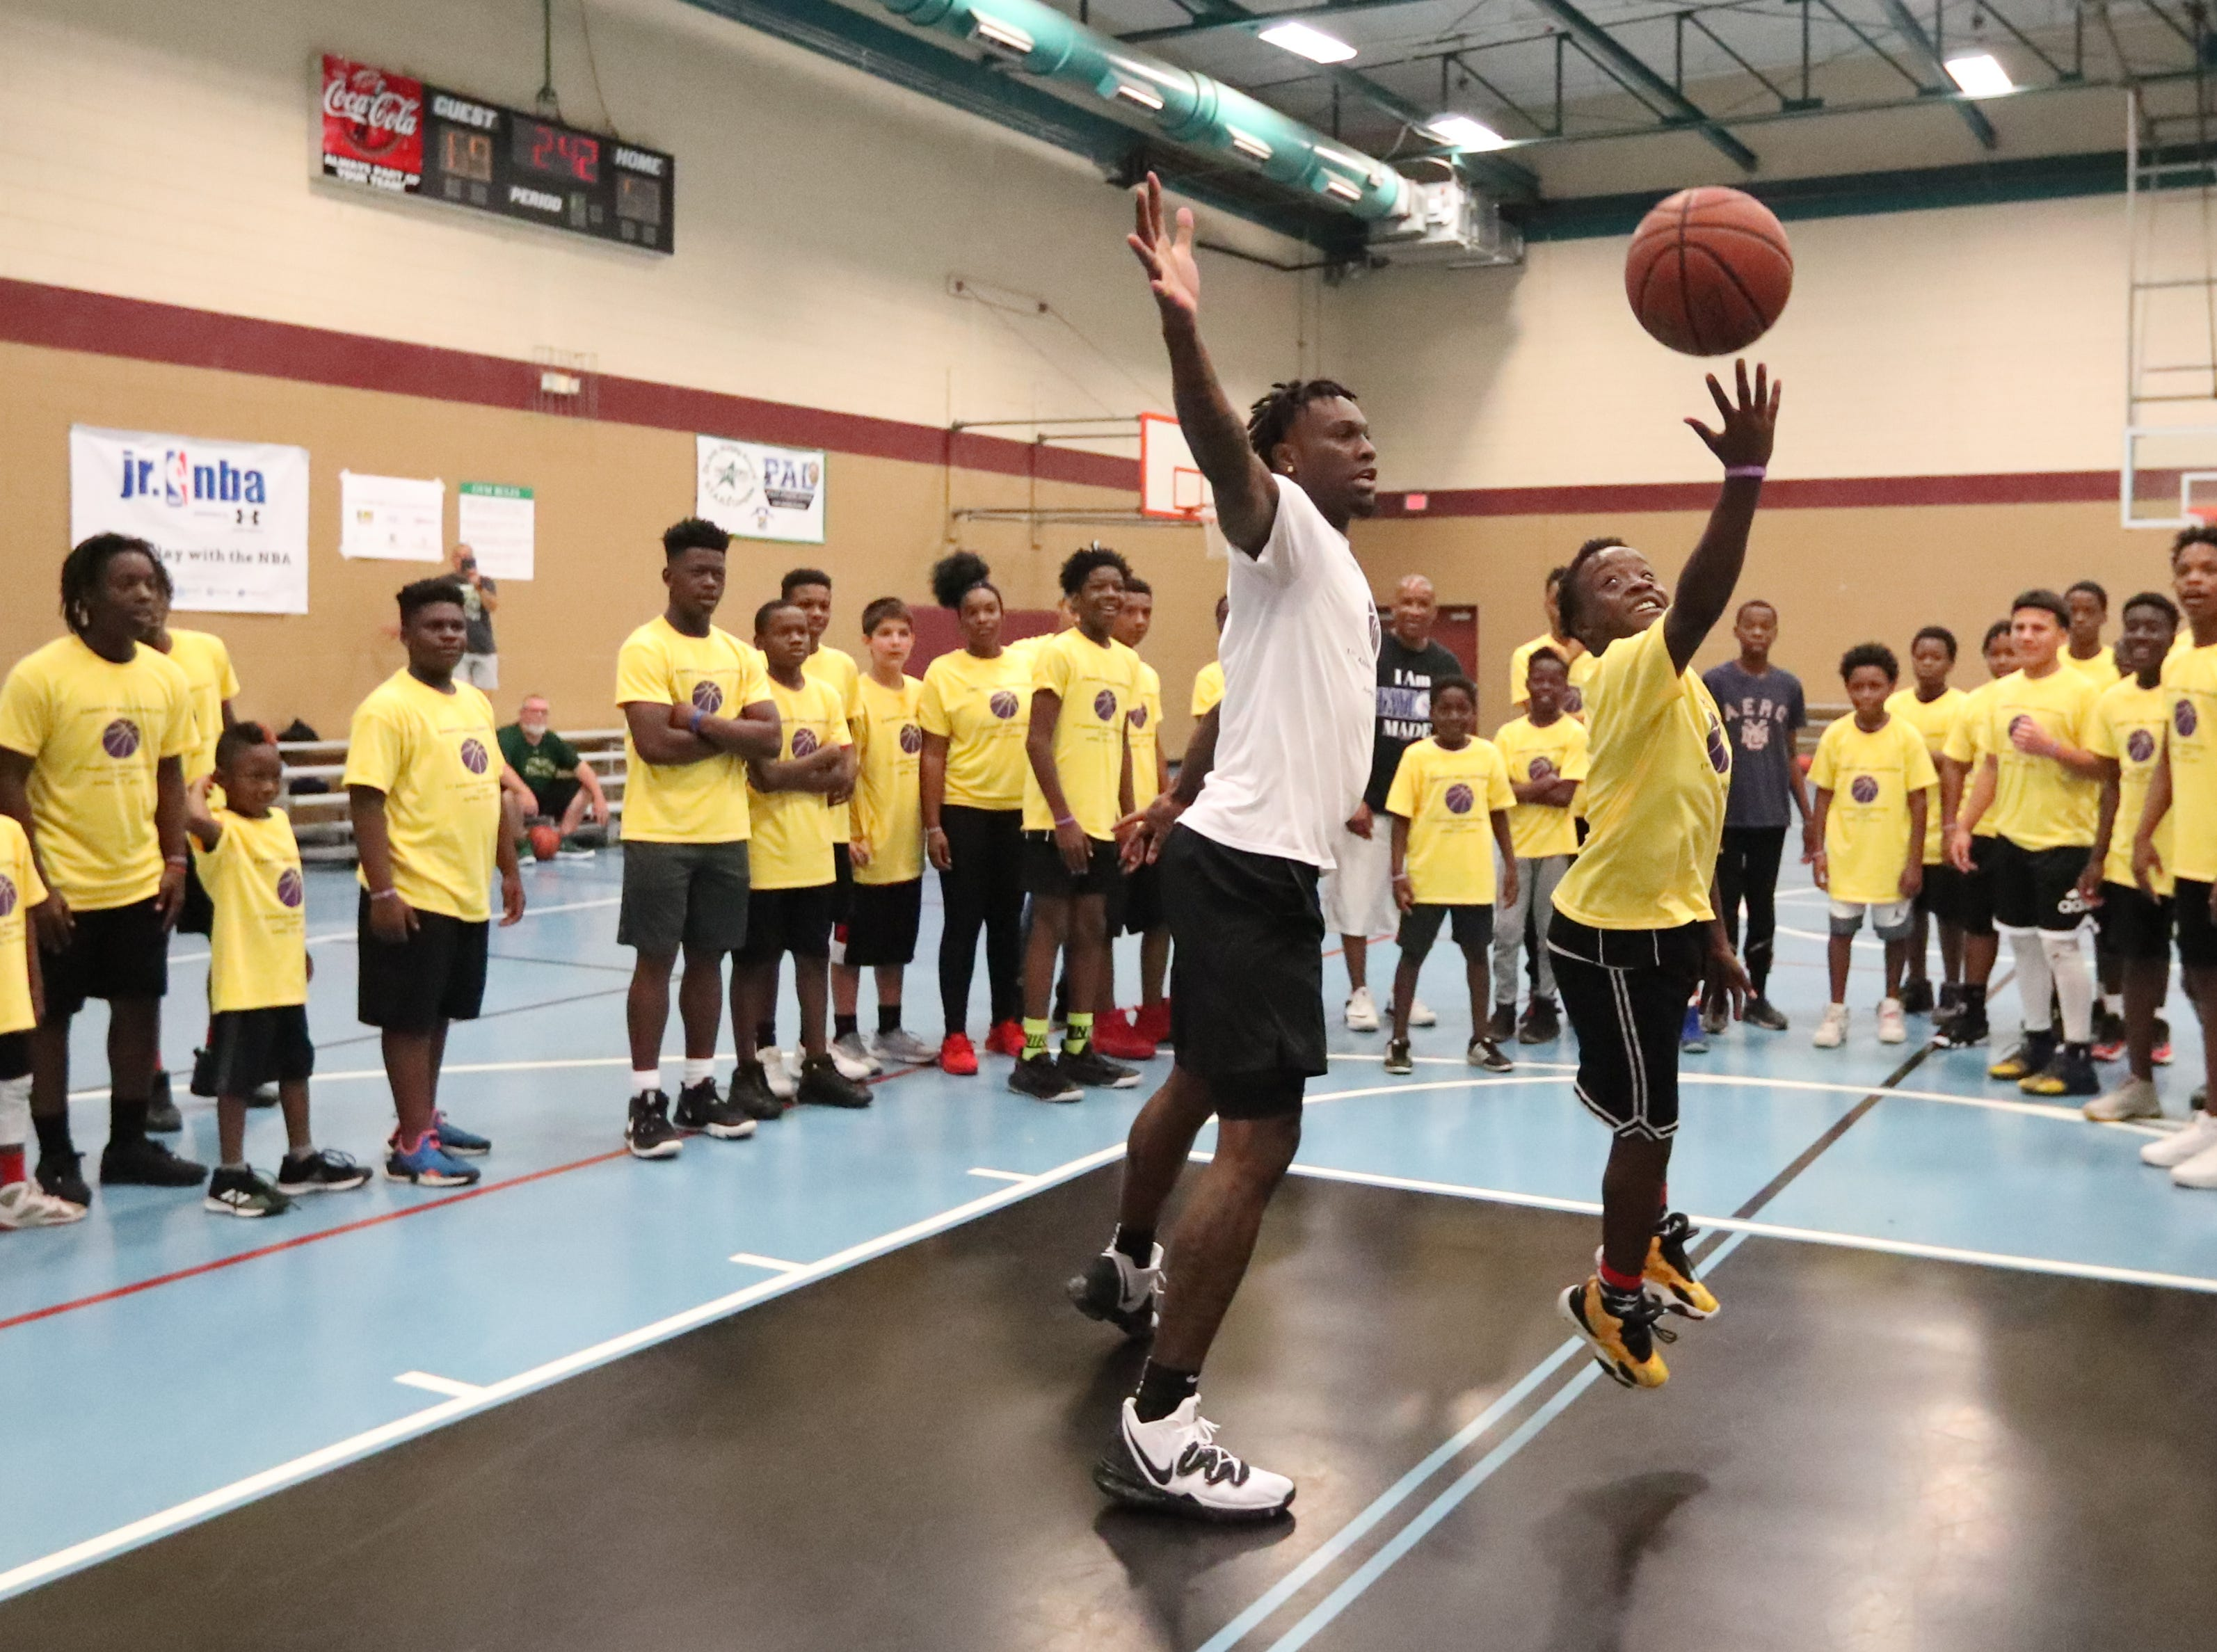 Jardarian Gayle, 13, takes on Emmitt Williams on a break. Emmitt Williams, a Fort Myers native who played at Lehigh his freshman year and just finished his freshman season at LSU, declared for the NBA Draft on Thursday night. Williams hosted a youth camp at the STARS Complex in Fort Myers, Fla., on Saturday, April 13, 2019.